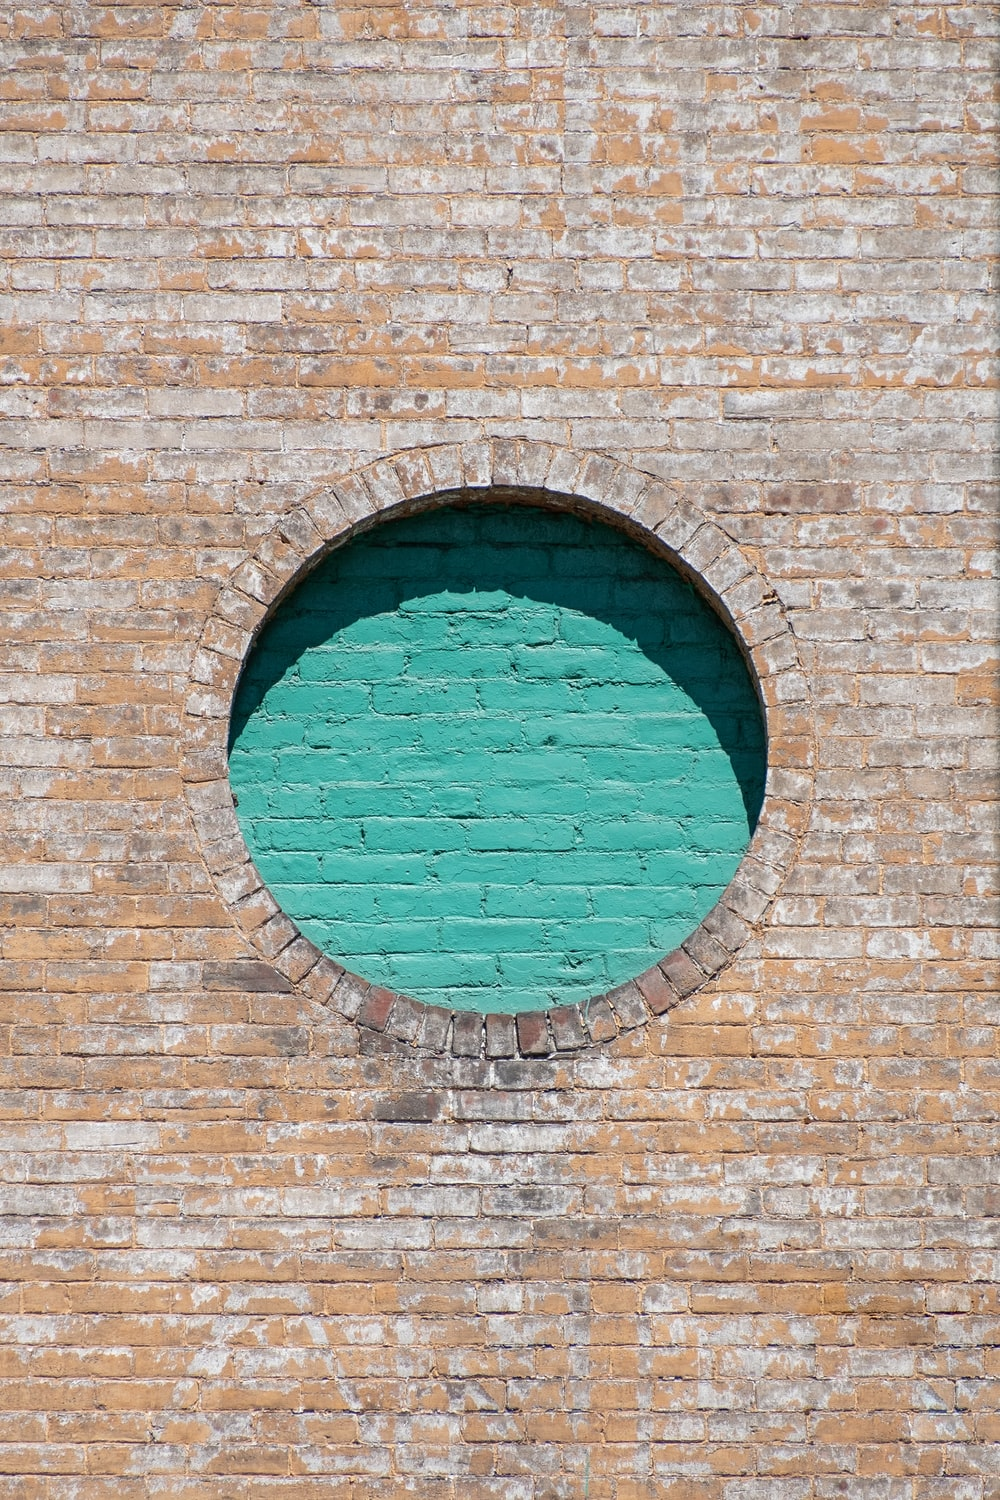 brown brick wall with blue round glass window